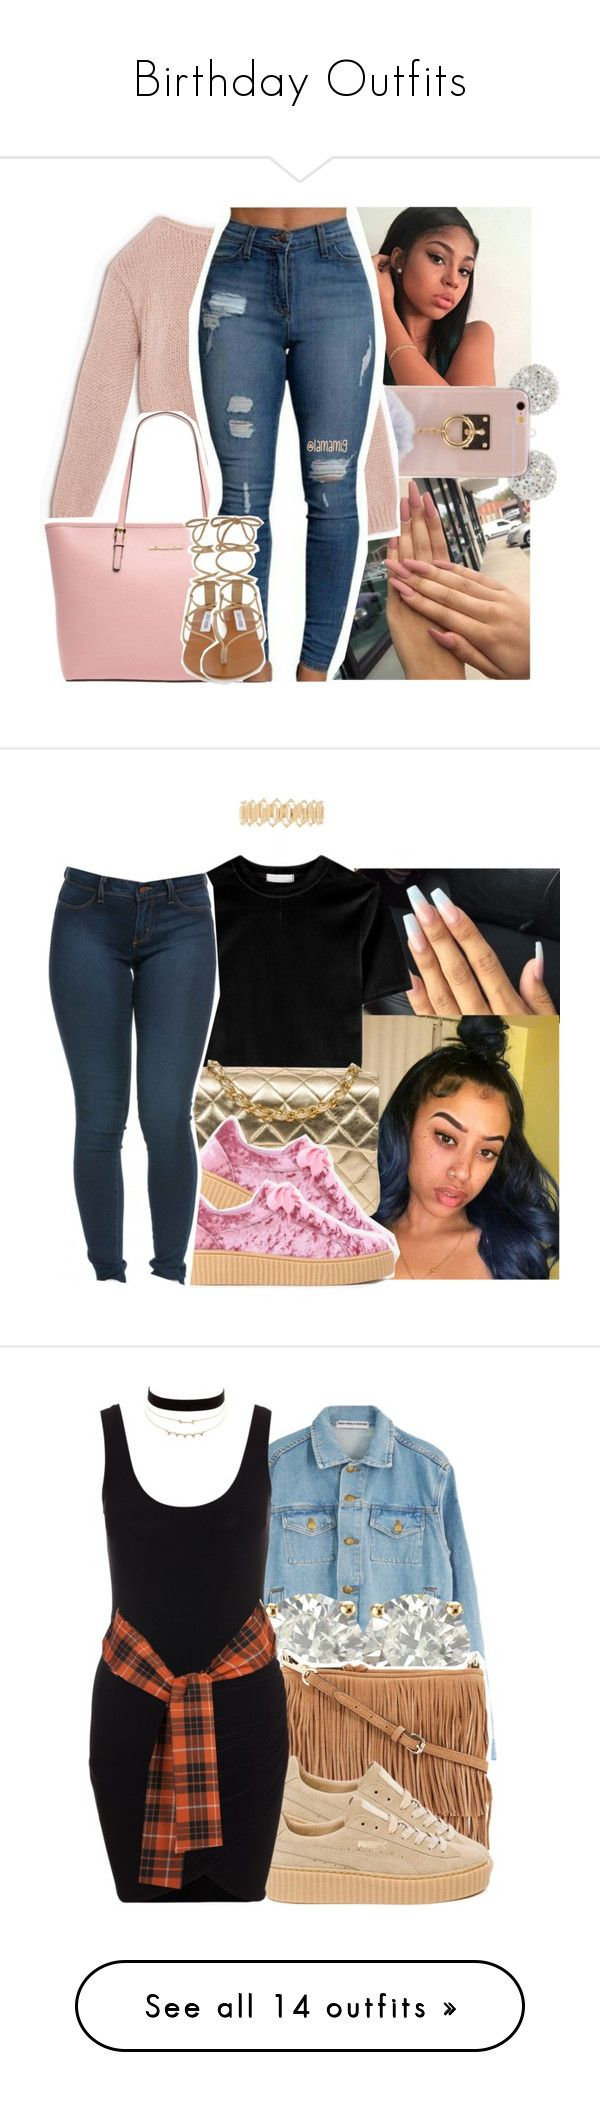 """""""Birthday Outfits"""" by yahcyriatinnon ❤ liked on Polyvore featuring Max&Co., MICHAEL Michael Kors, Steve Madden, Chanel, Haati Chai, Trendy, 2016, Auriya, Rebecca Minkoff and Puma"""